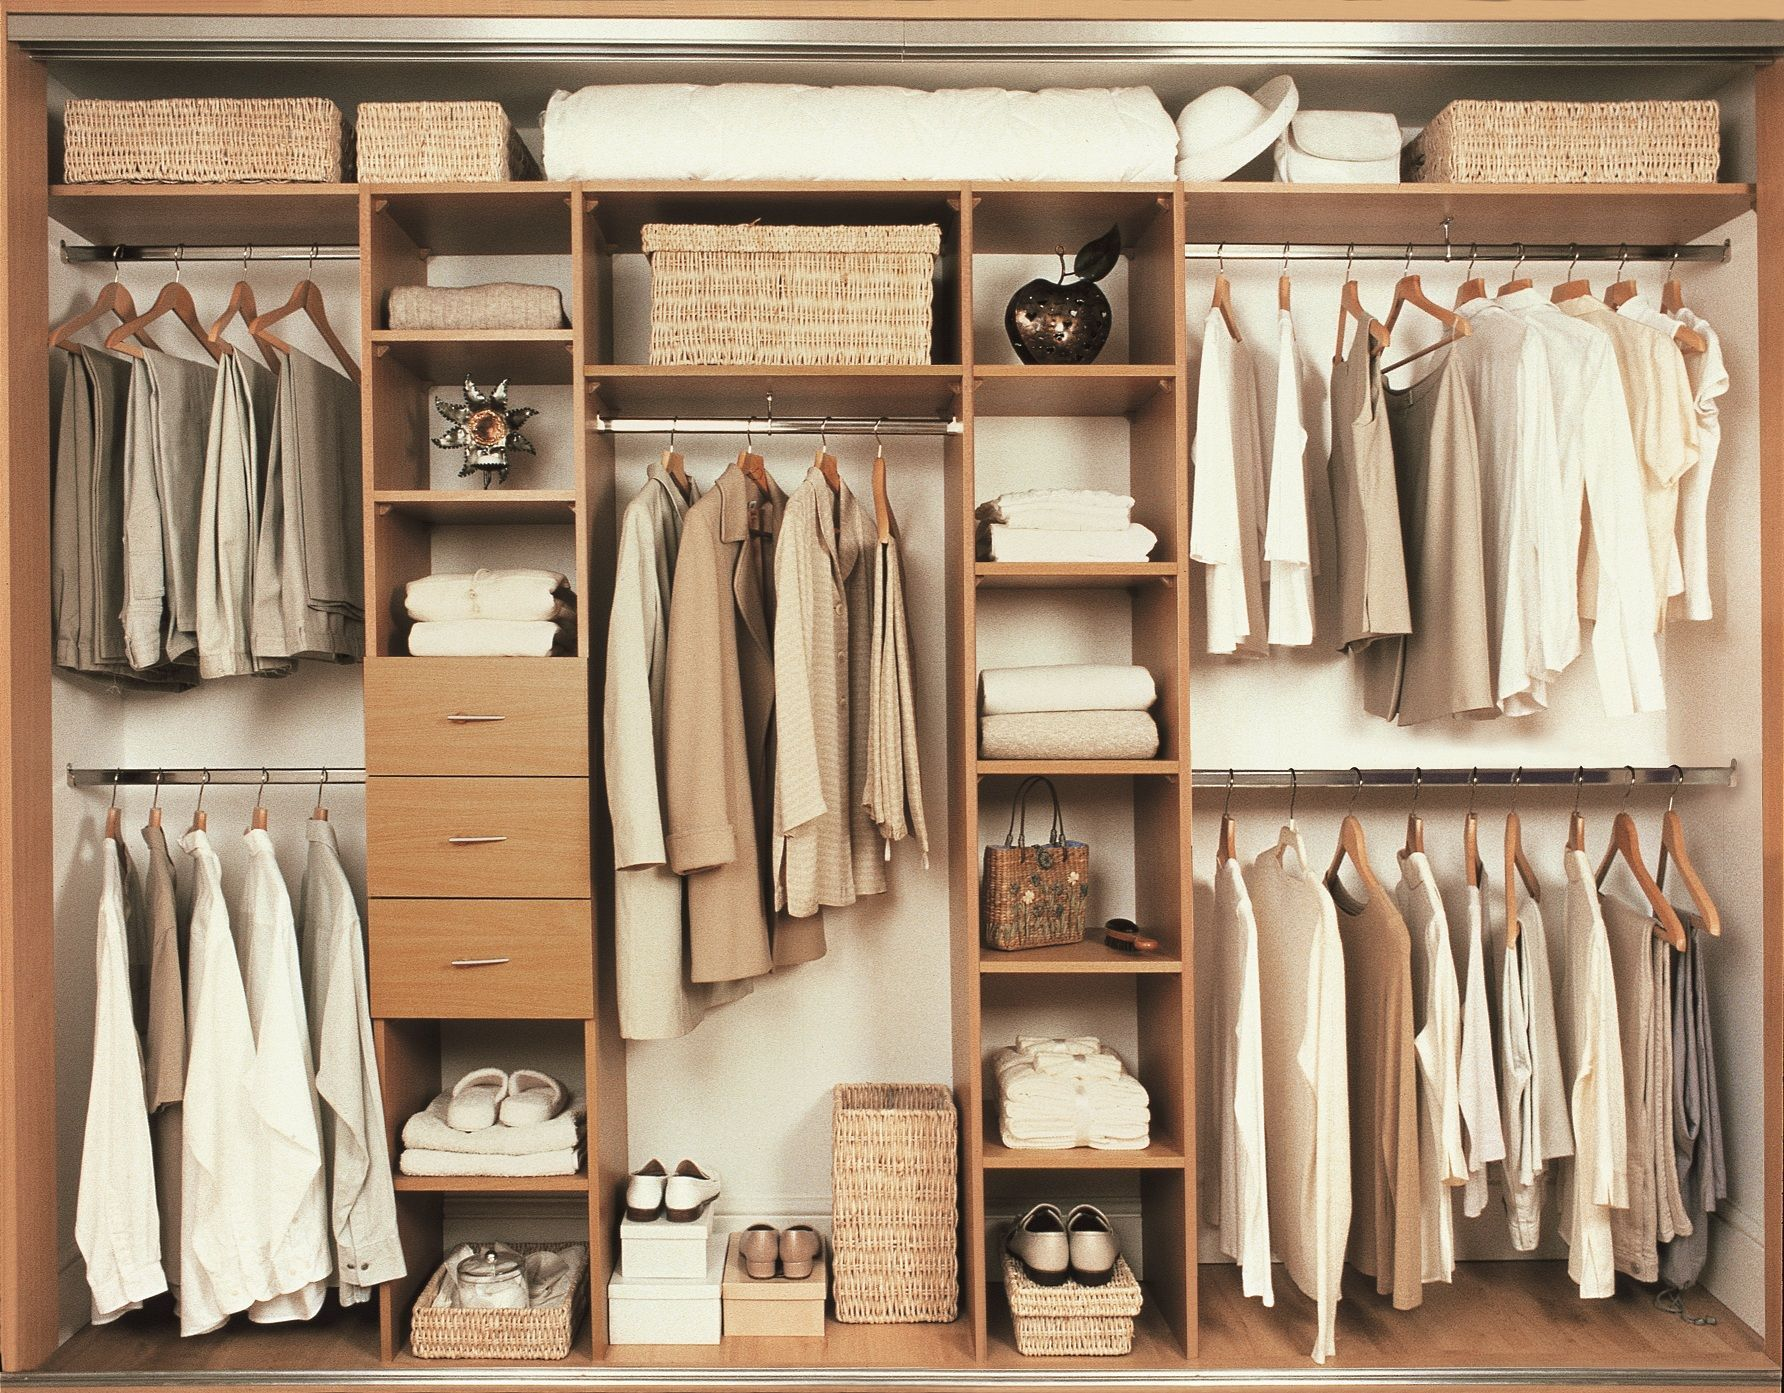 units systems design lowes ideas organizing fine closet to in decorating closets walk go organizer creative extremely contemporary small interesting almond